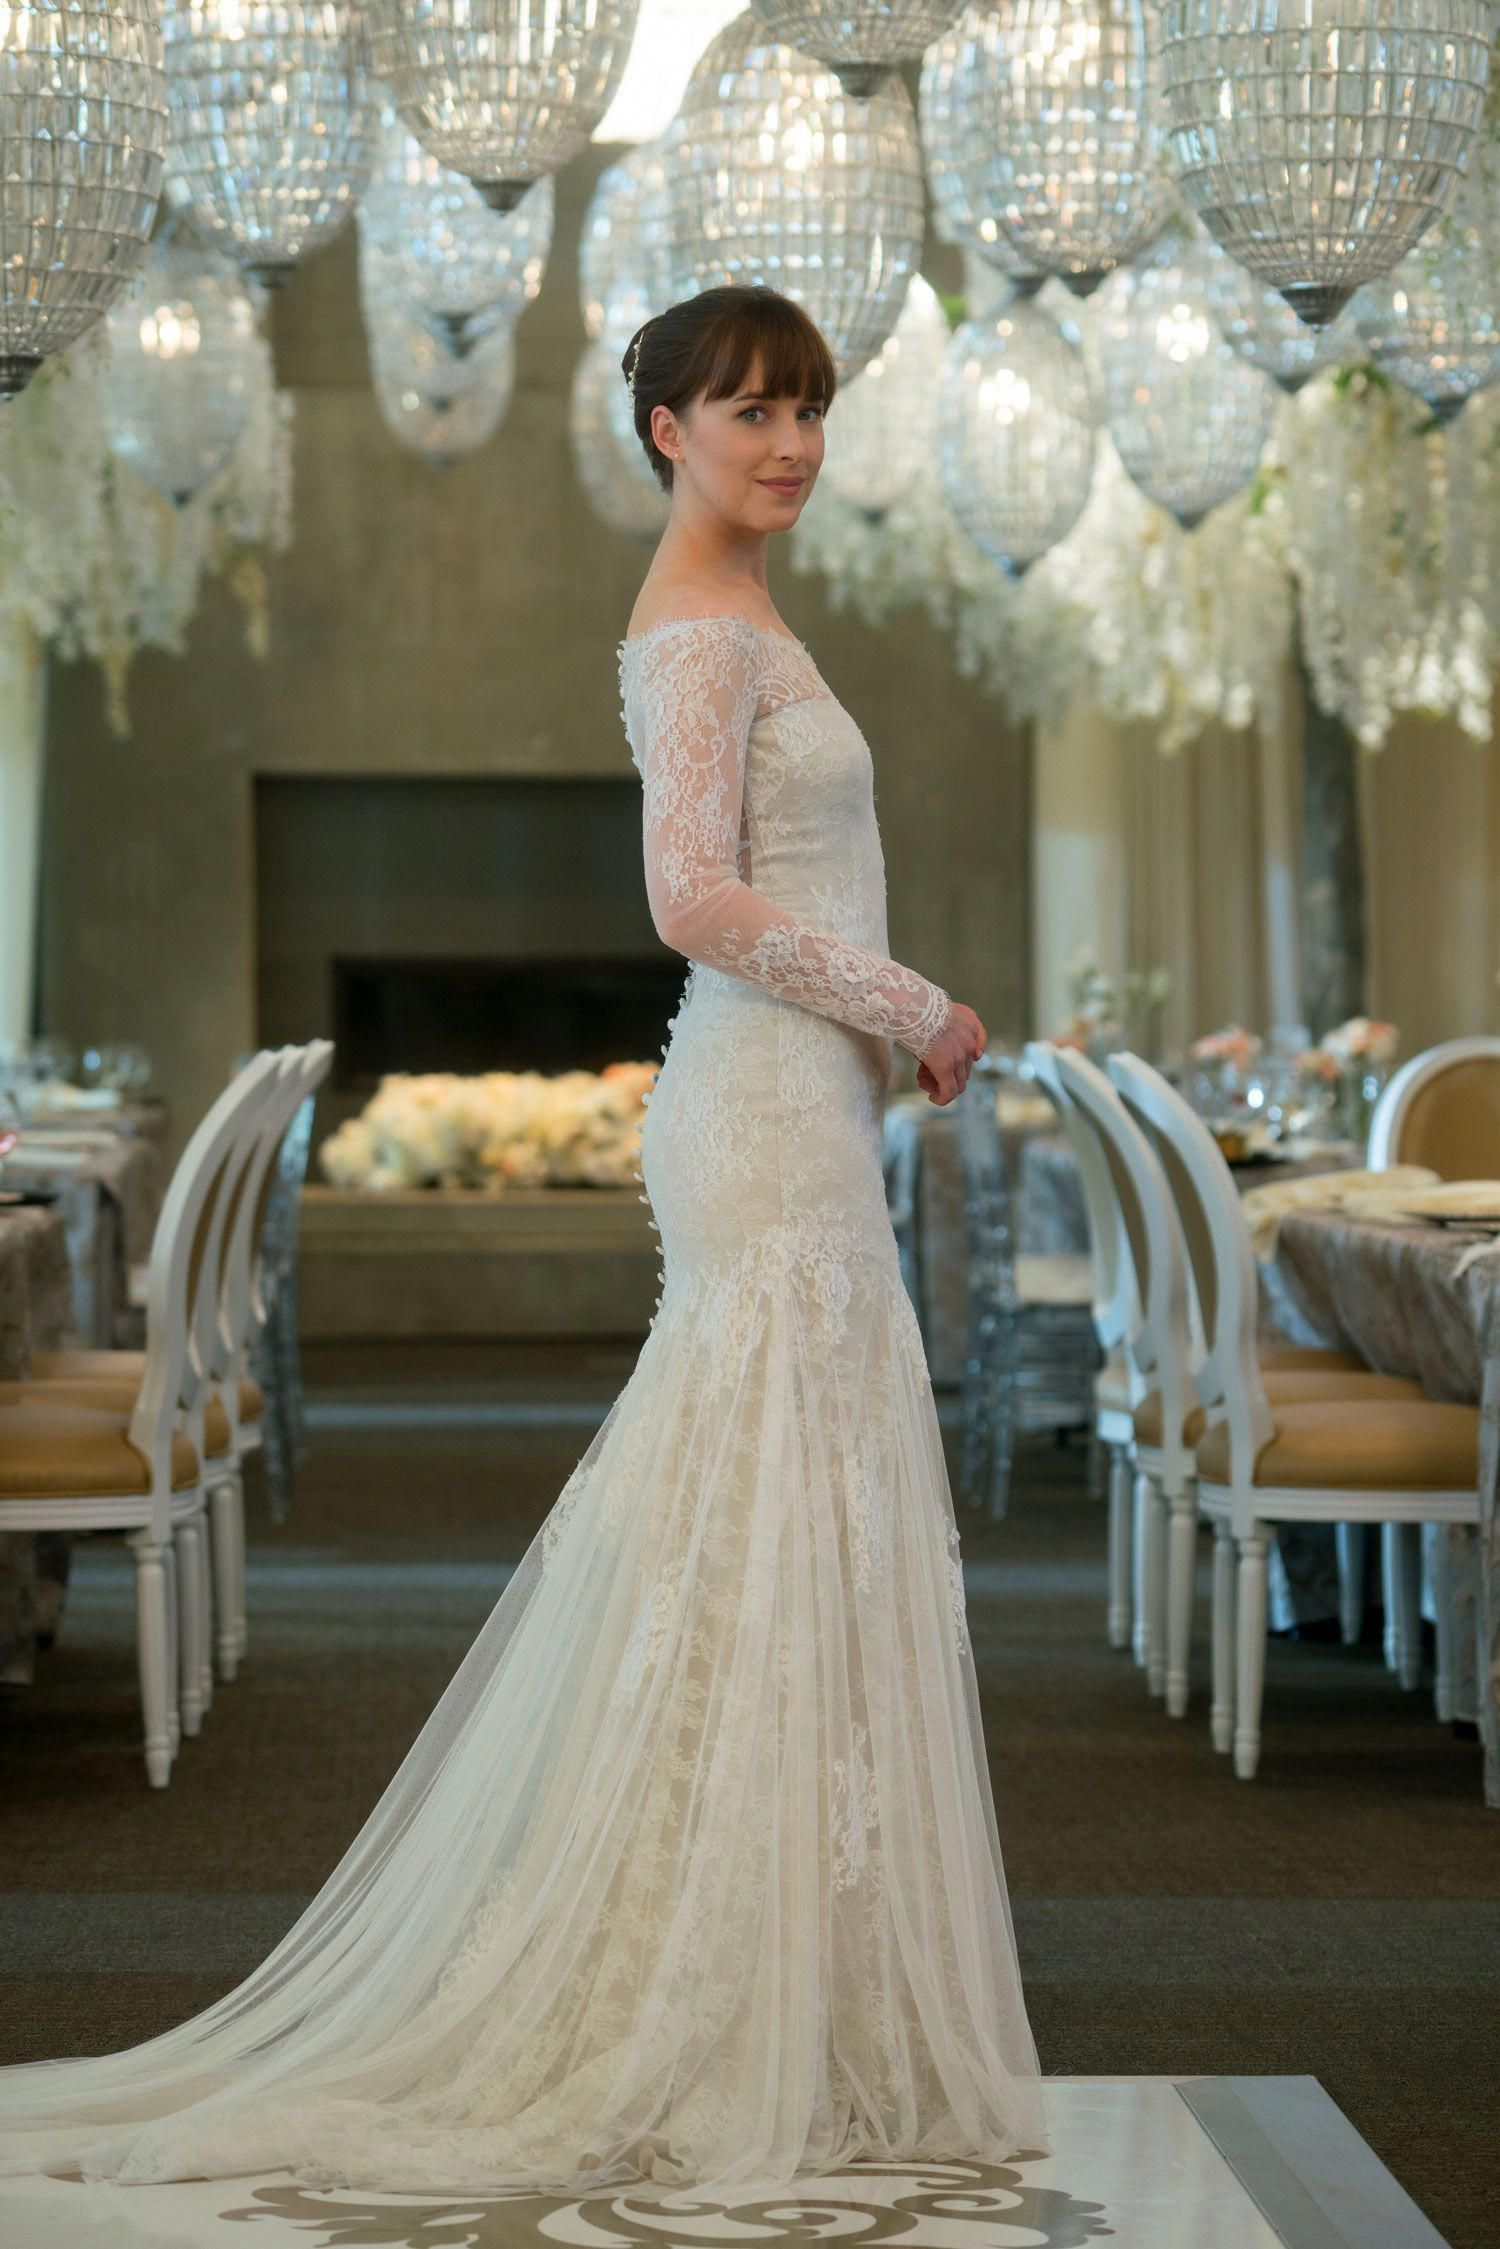 Fifty Shades Wedding Album Exclusive Details And Photos Movie Wedding Dresses Worst Wedding Dress Wedding Dresses